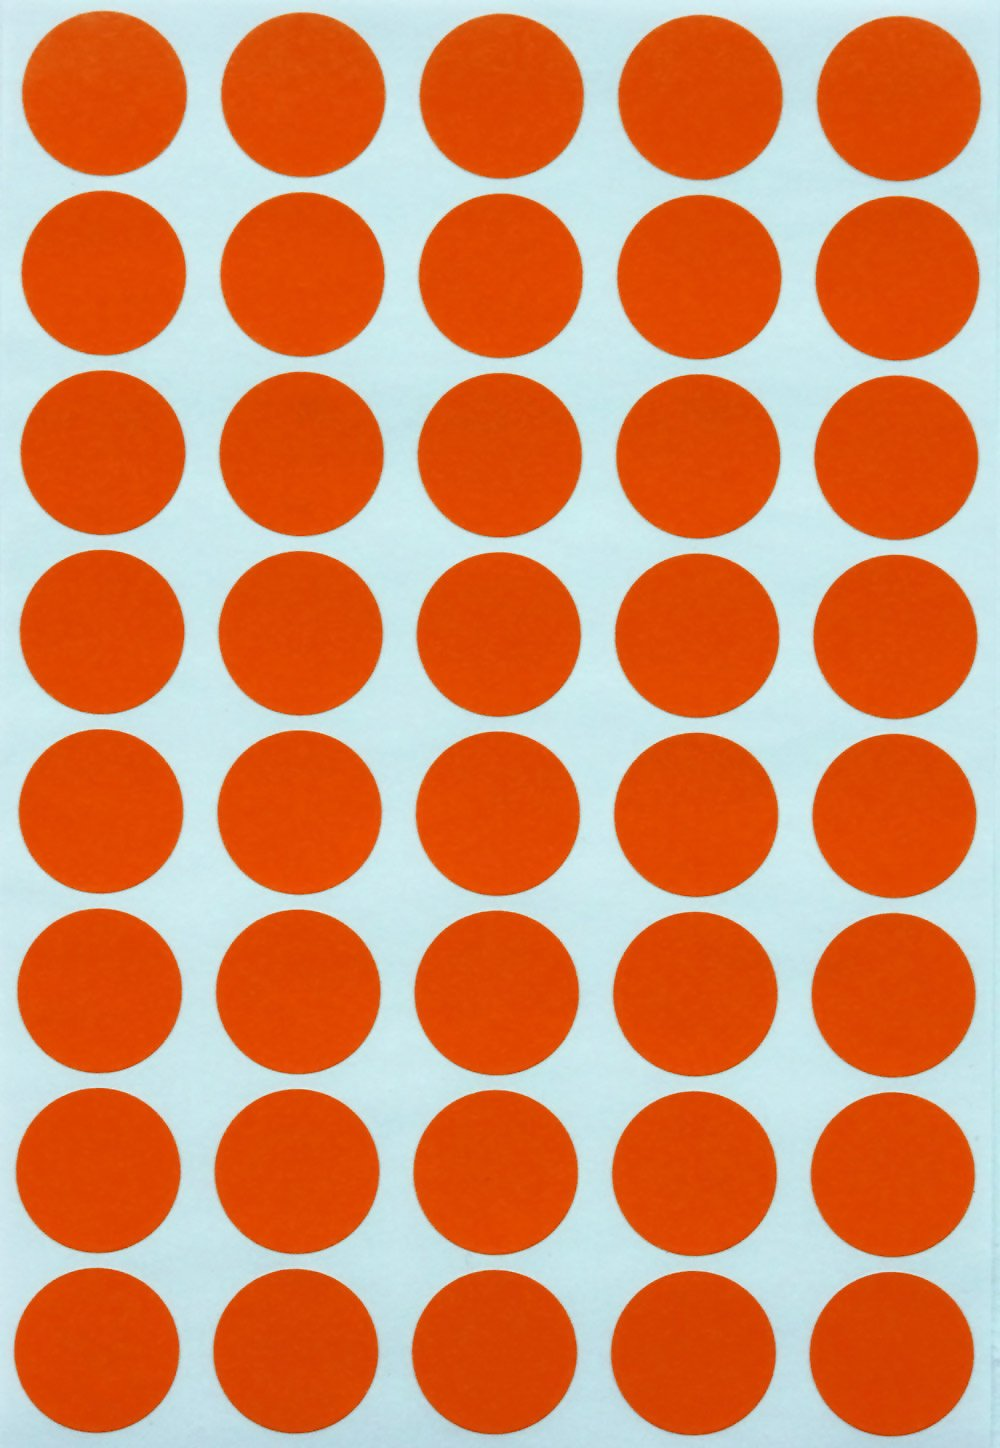 Amazon com color coding labels dots sticker 19mm 3 4 inch orange 280 pack by royal green office products